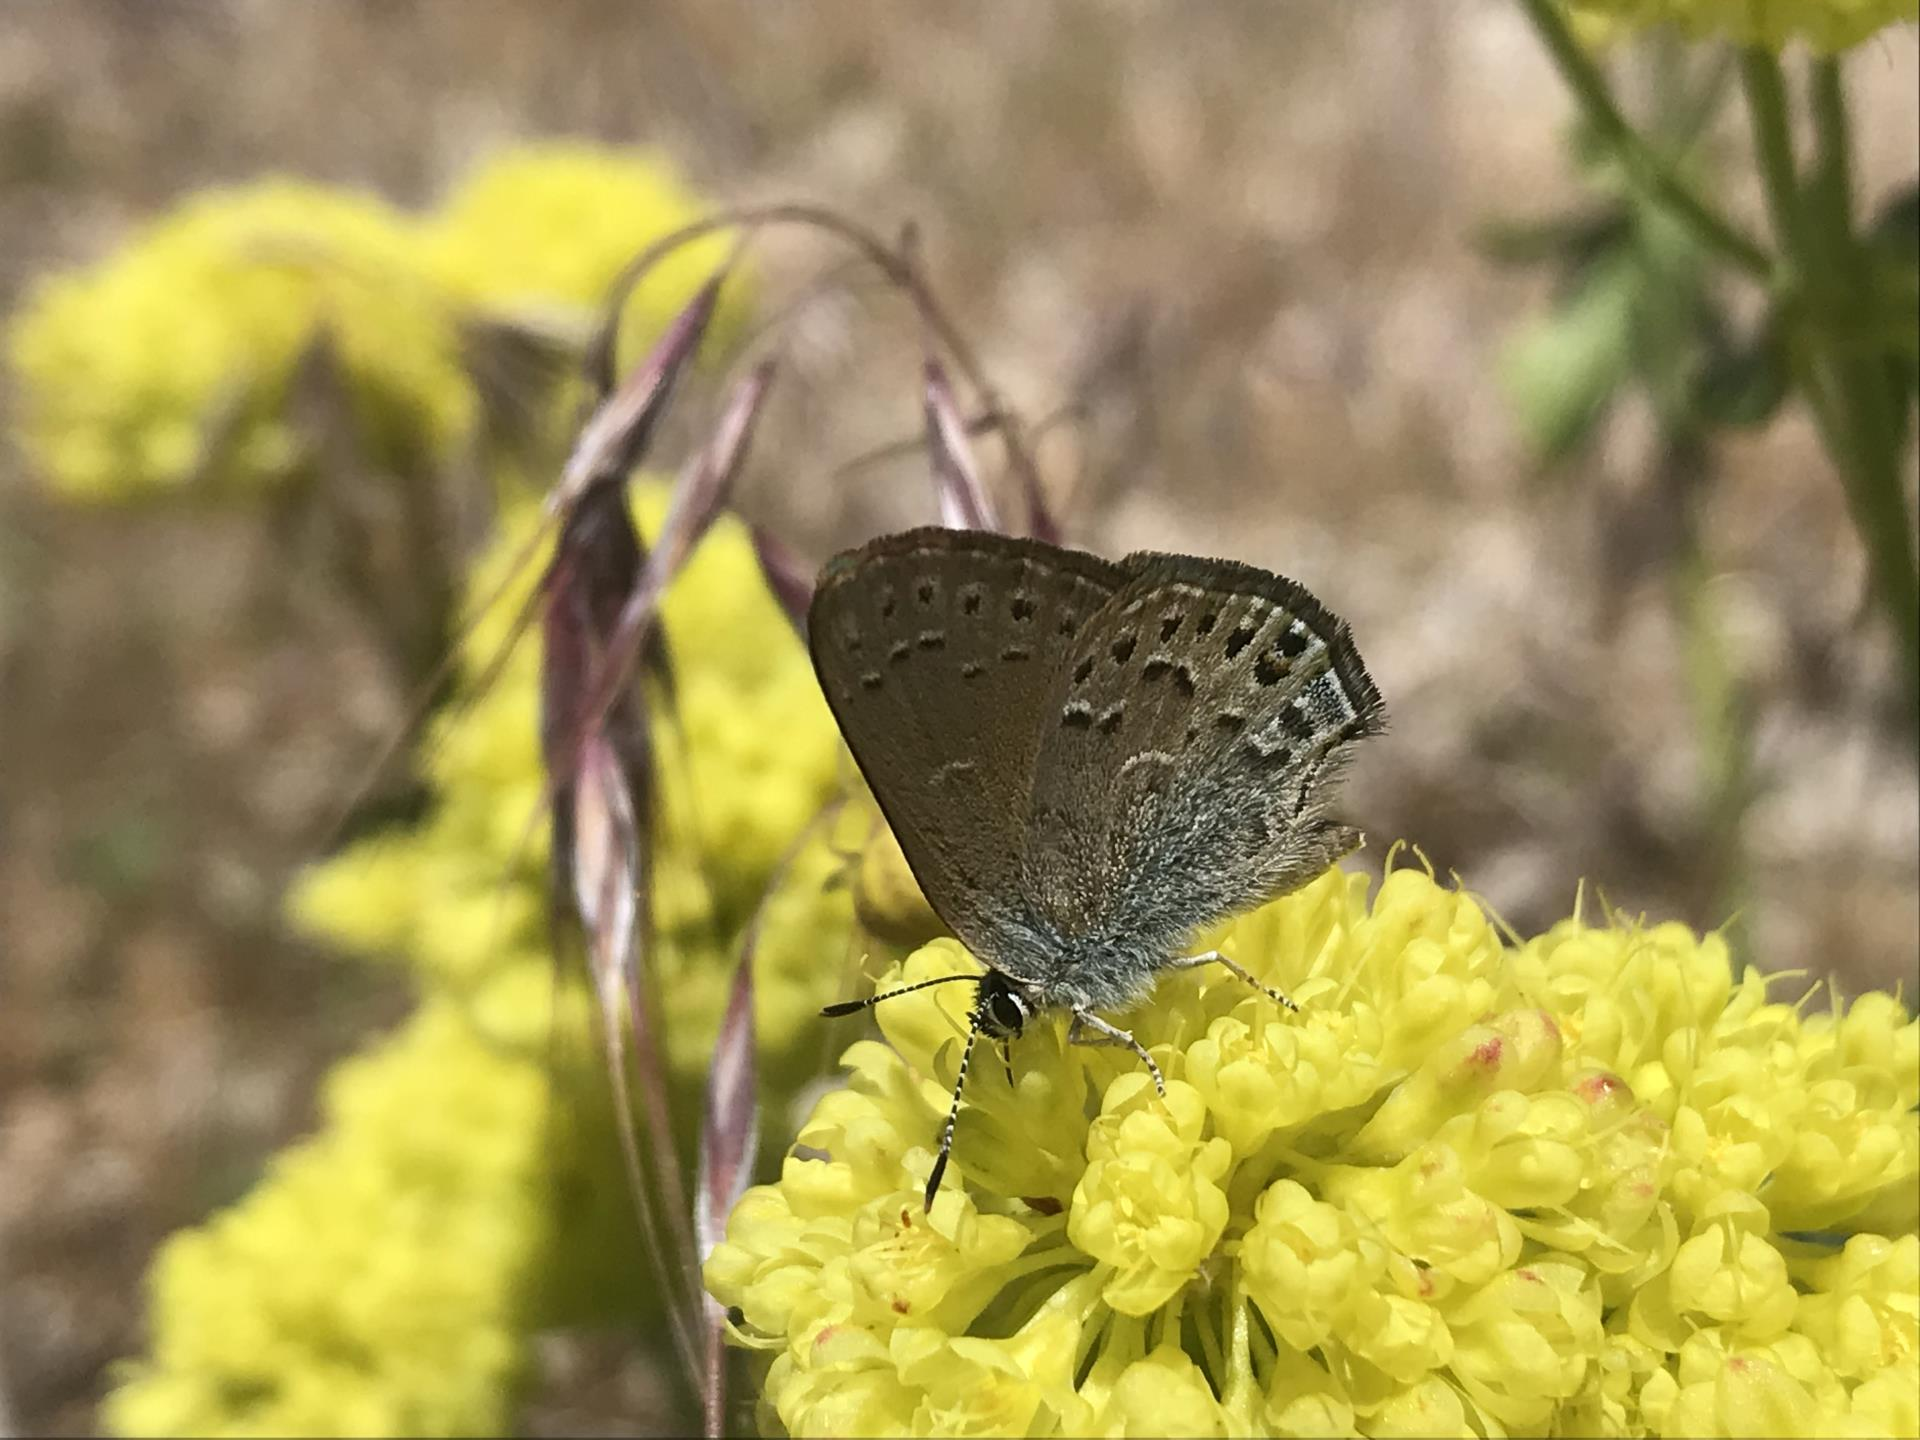 Butterfly foraging on the native plant Sulphur Buckwheat, Eriogonum umbellatum.